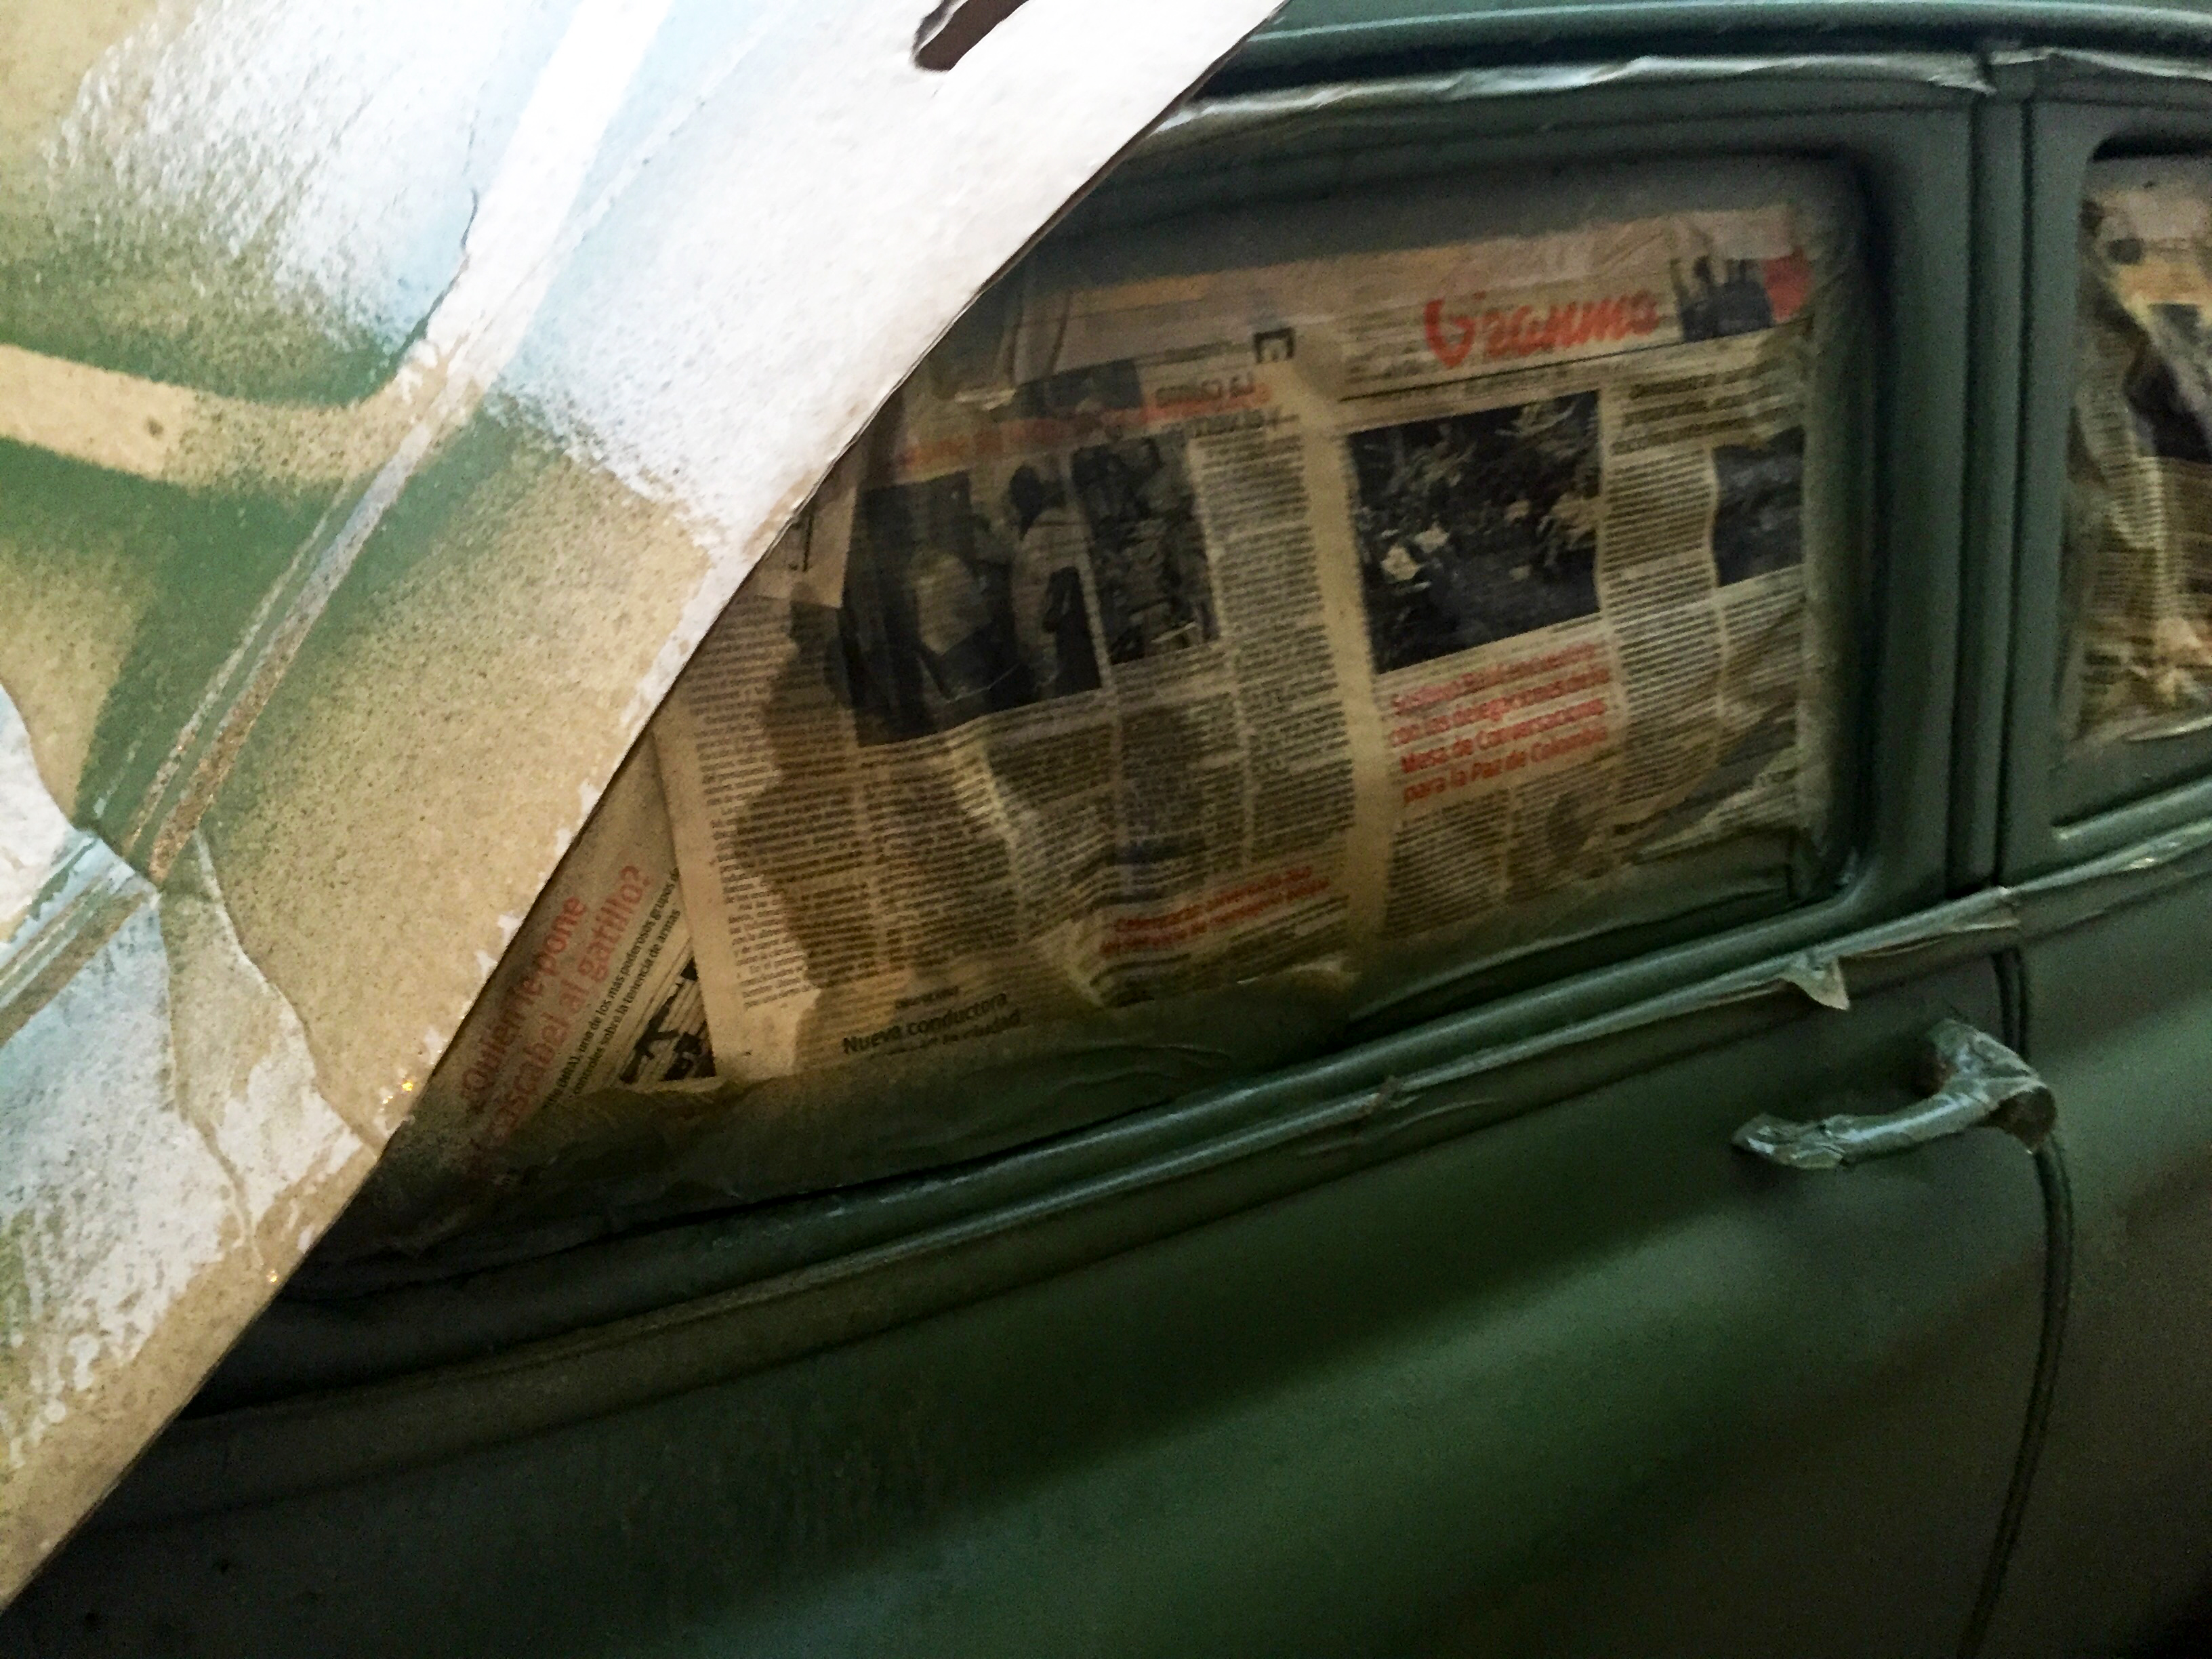 Newspapers blocking a car's windows